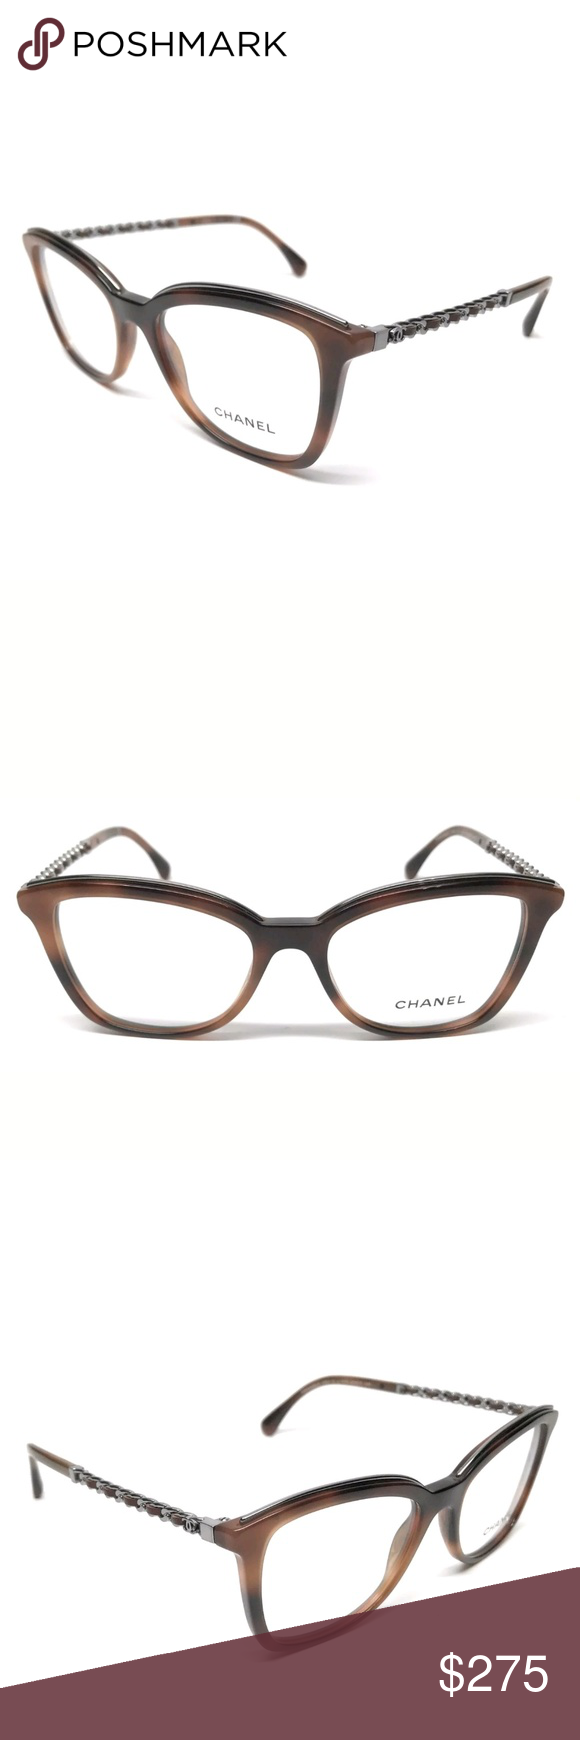 4bc90ab0acf Chanel Eyeglasses New authentic Brown frame Size 51-17 Case included CHANEL  Accessories Glasses